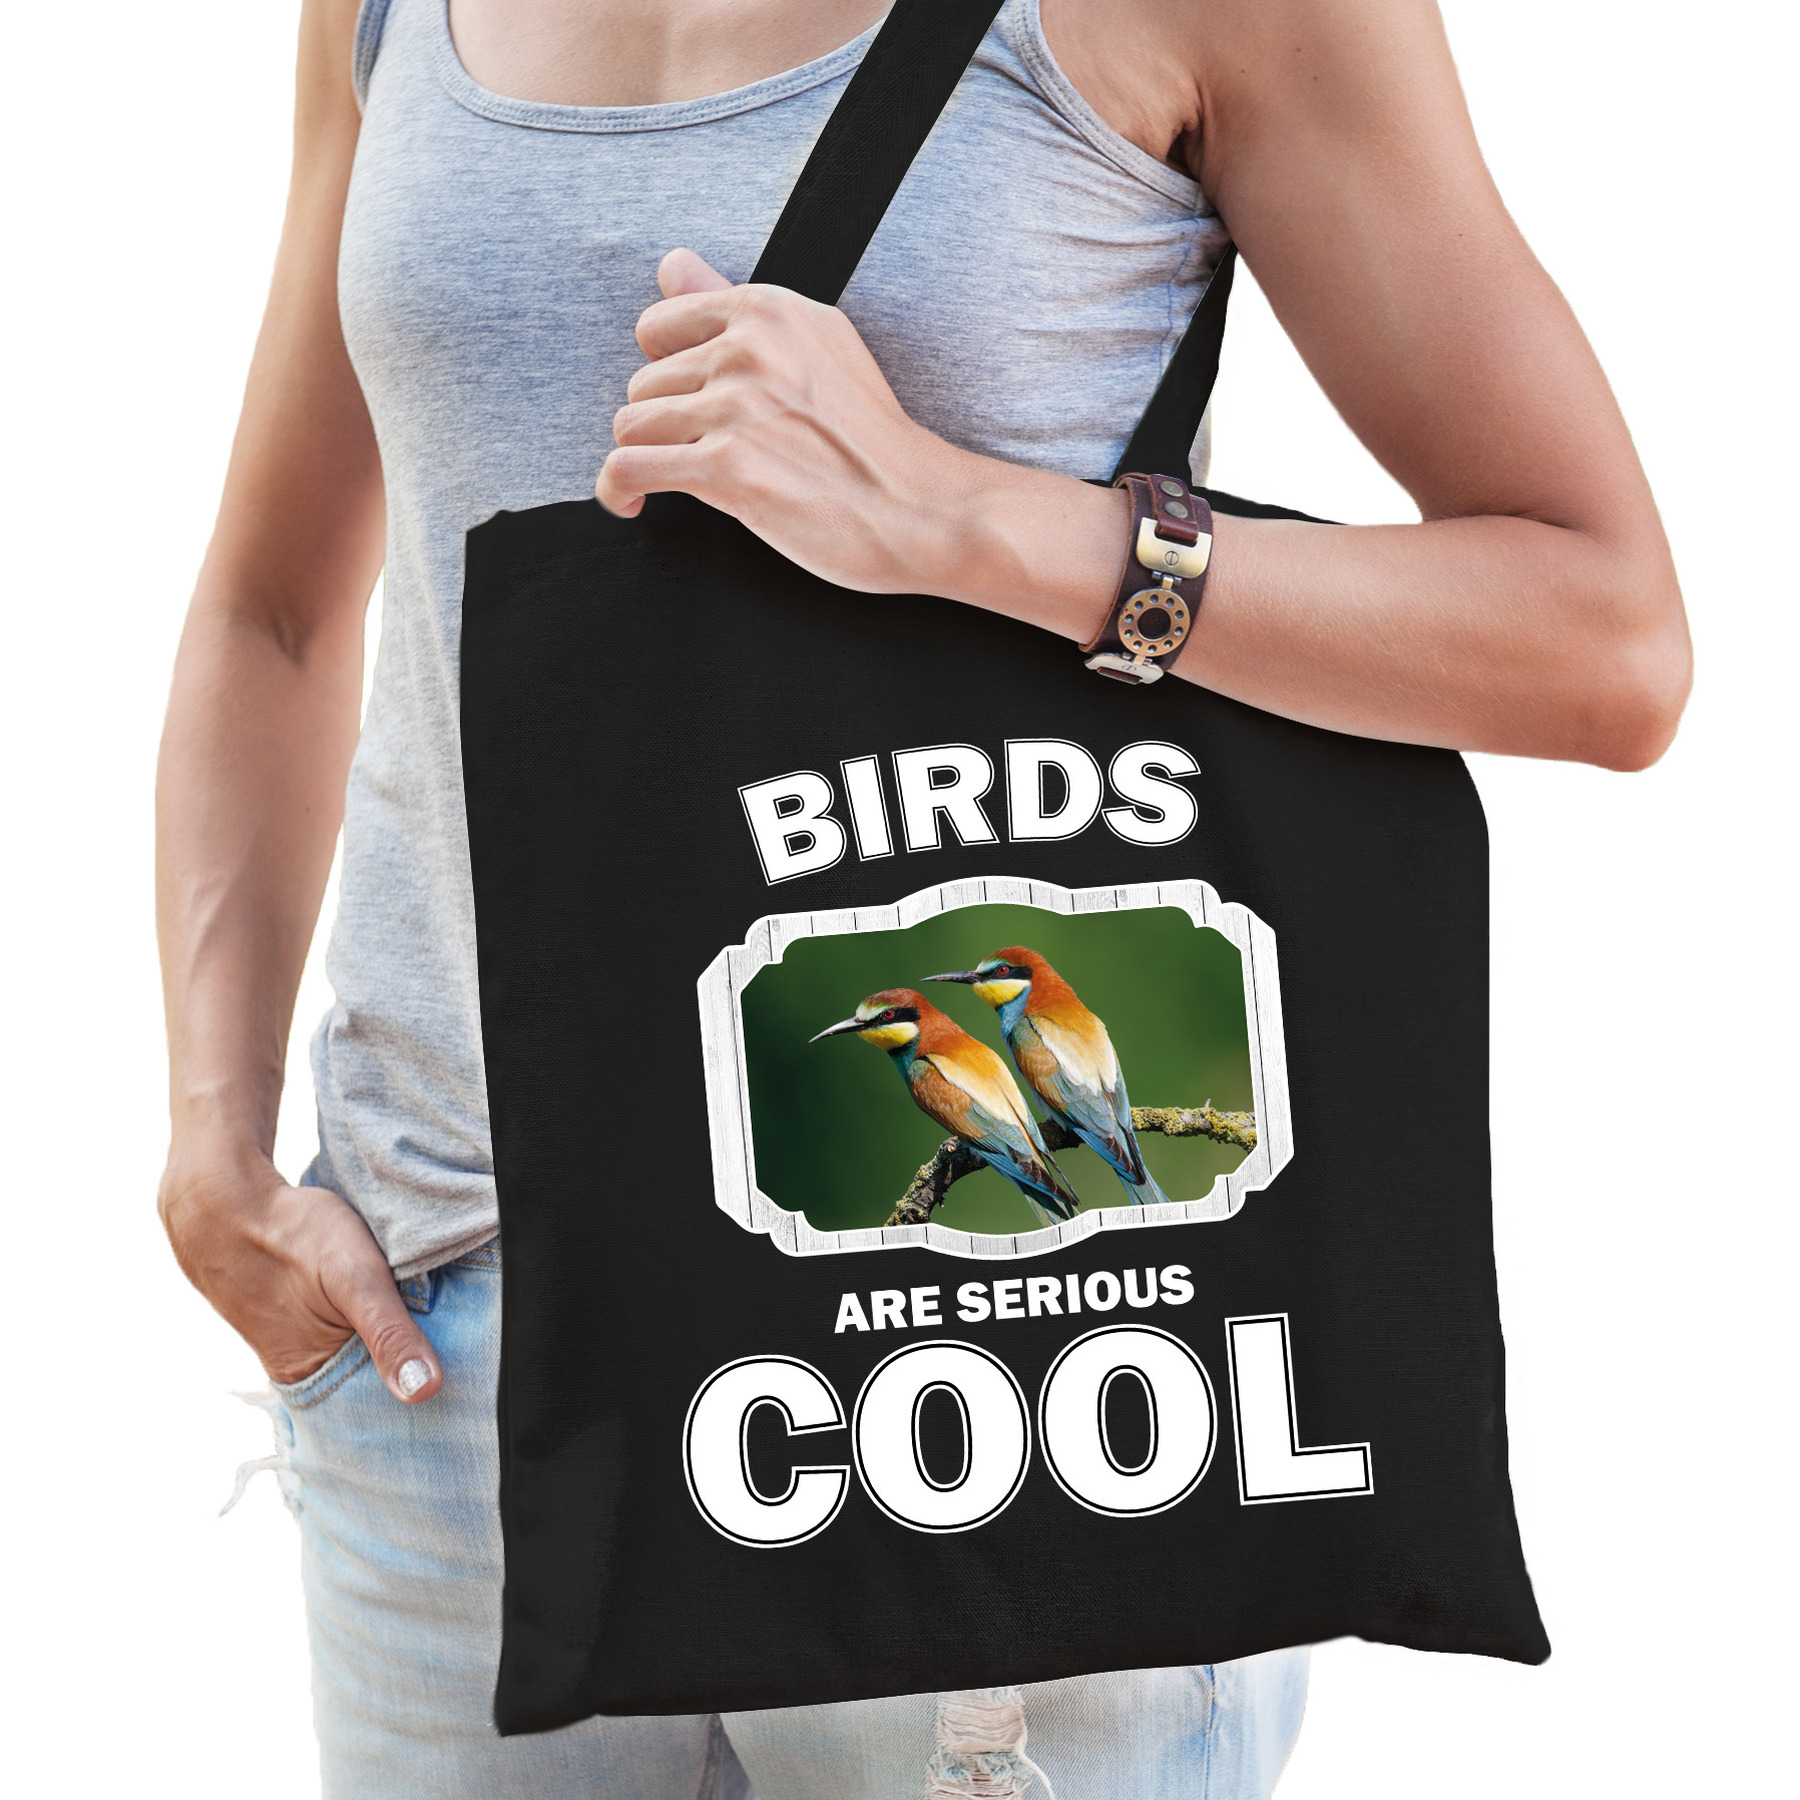 Katoenen tasje birds are serious cool zwart - vogels/ bijeneter vogel cadeau tas